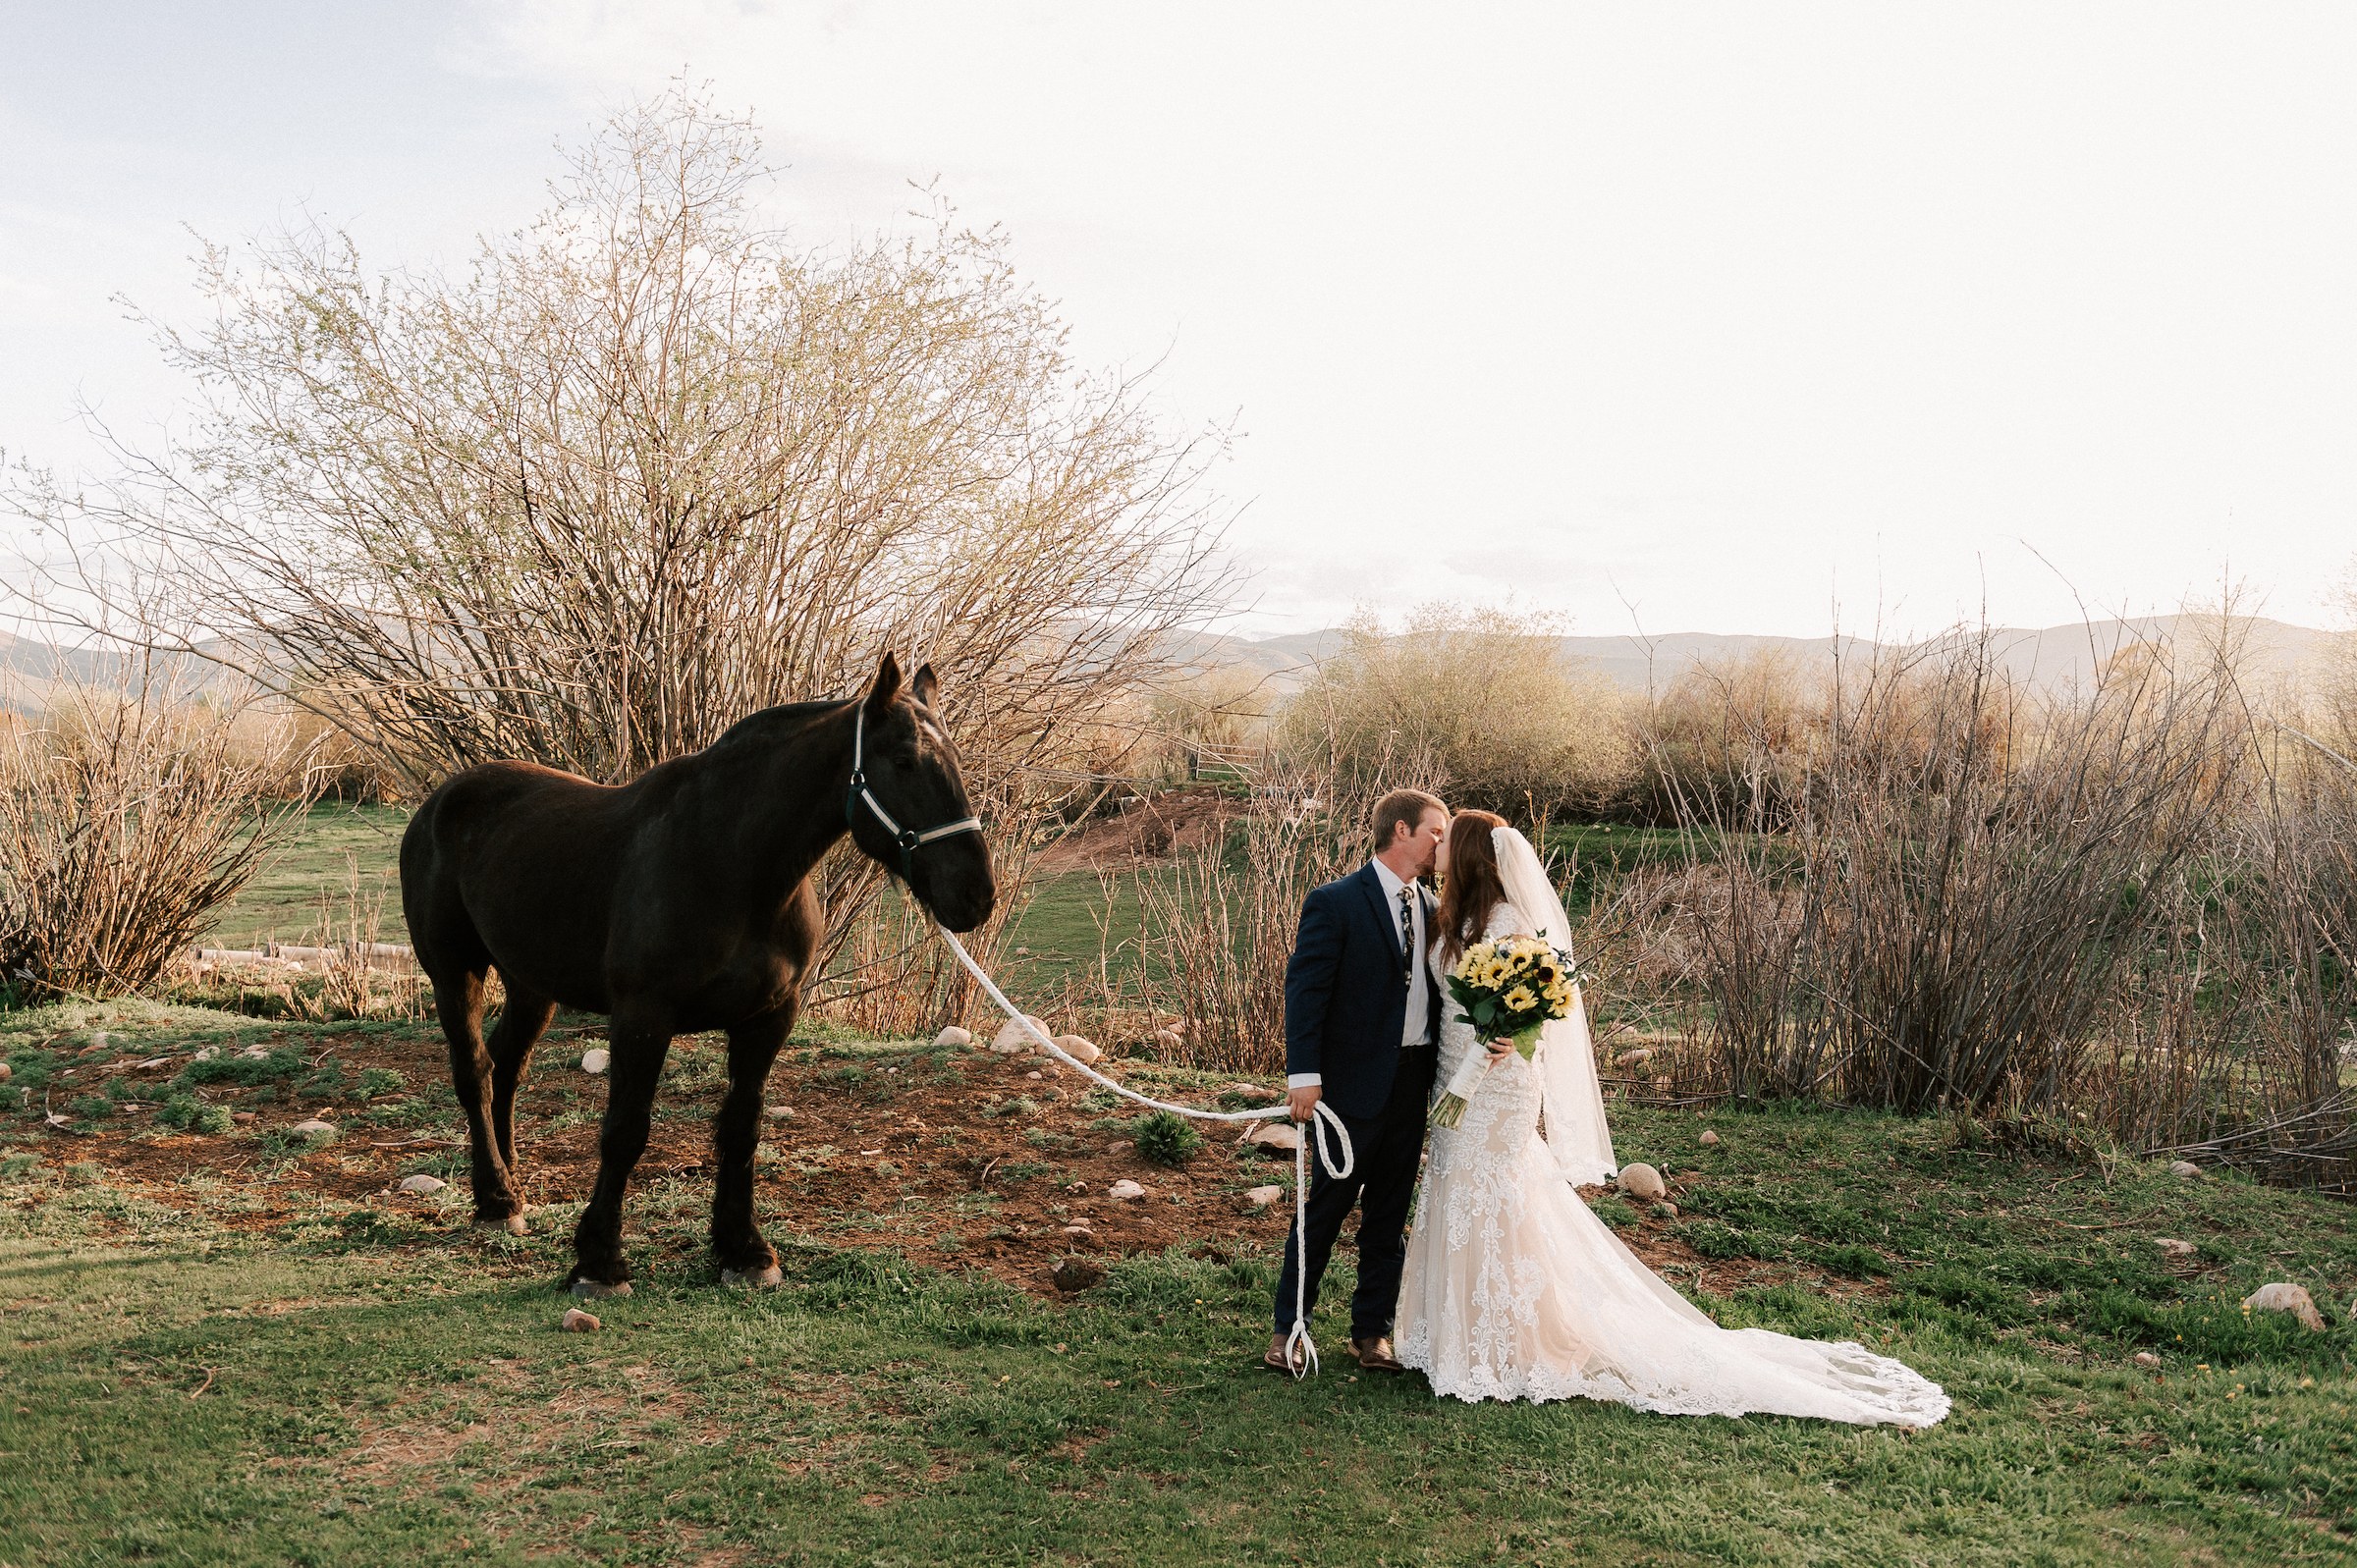 Classic Wedding Dress Cowboy Boots Horse Ranch Tew Treasures Photography 1